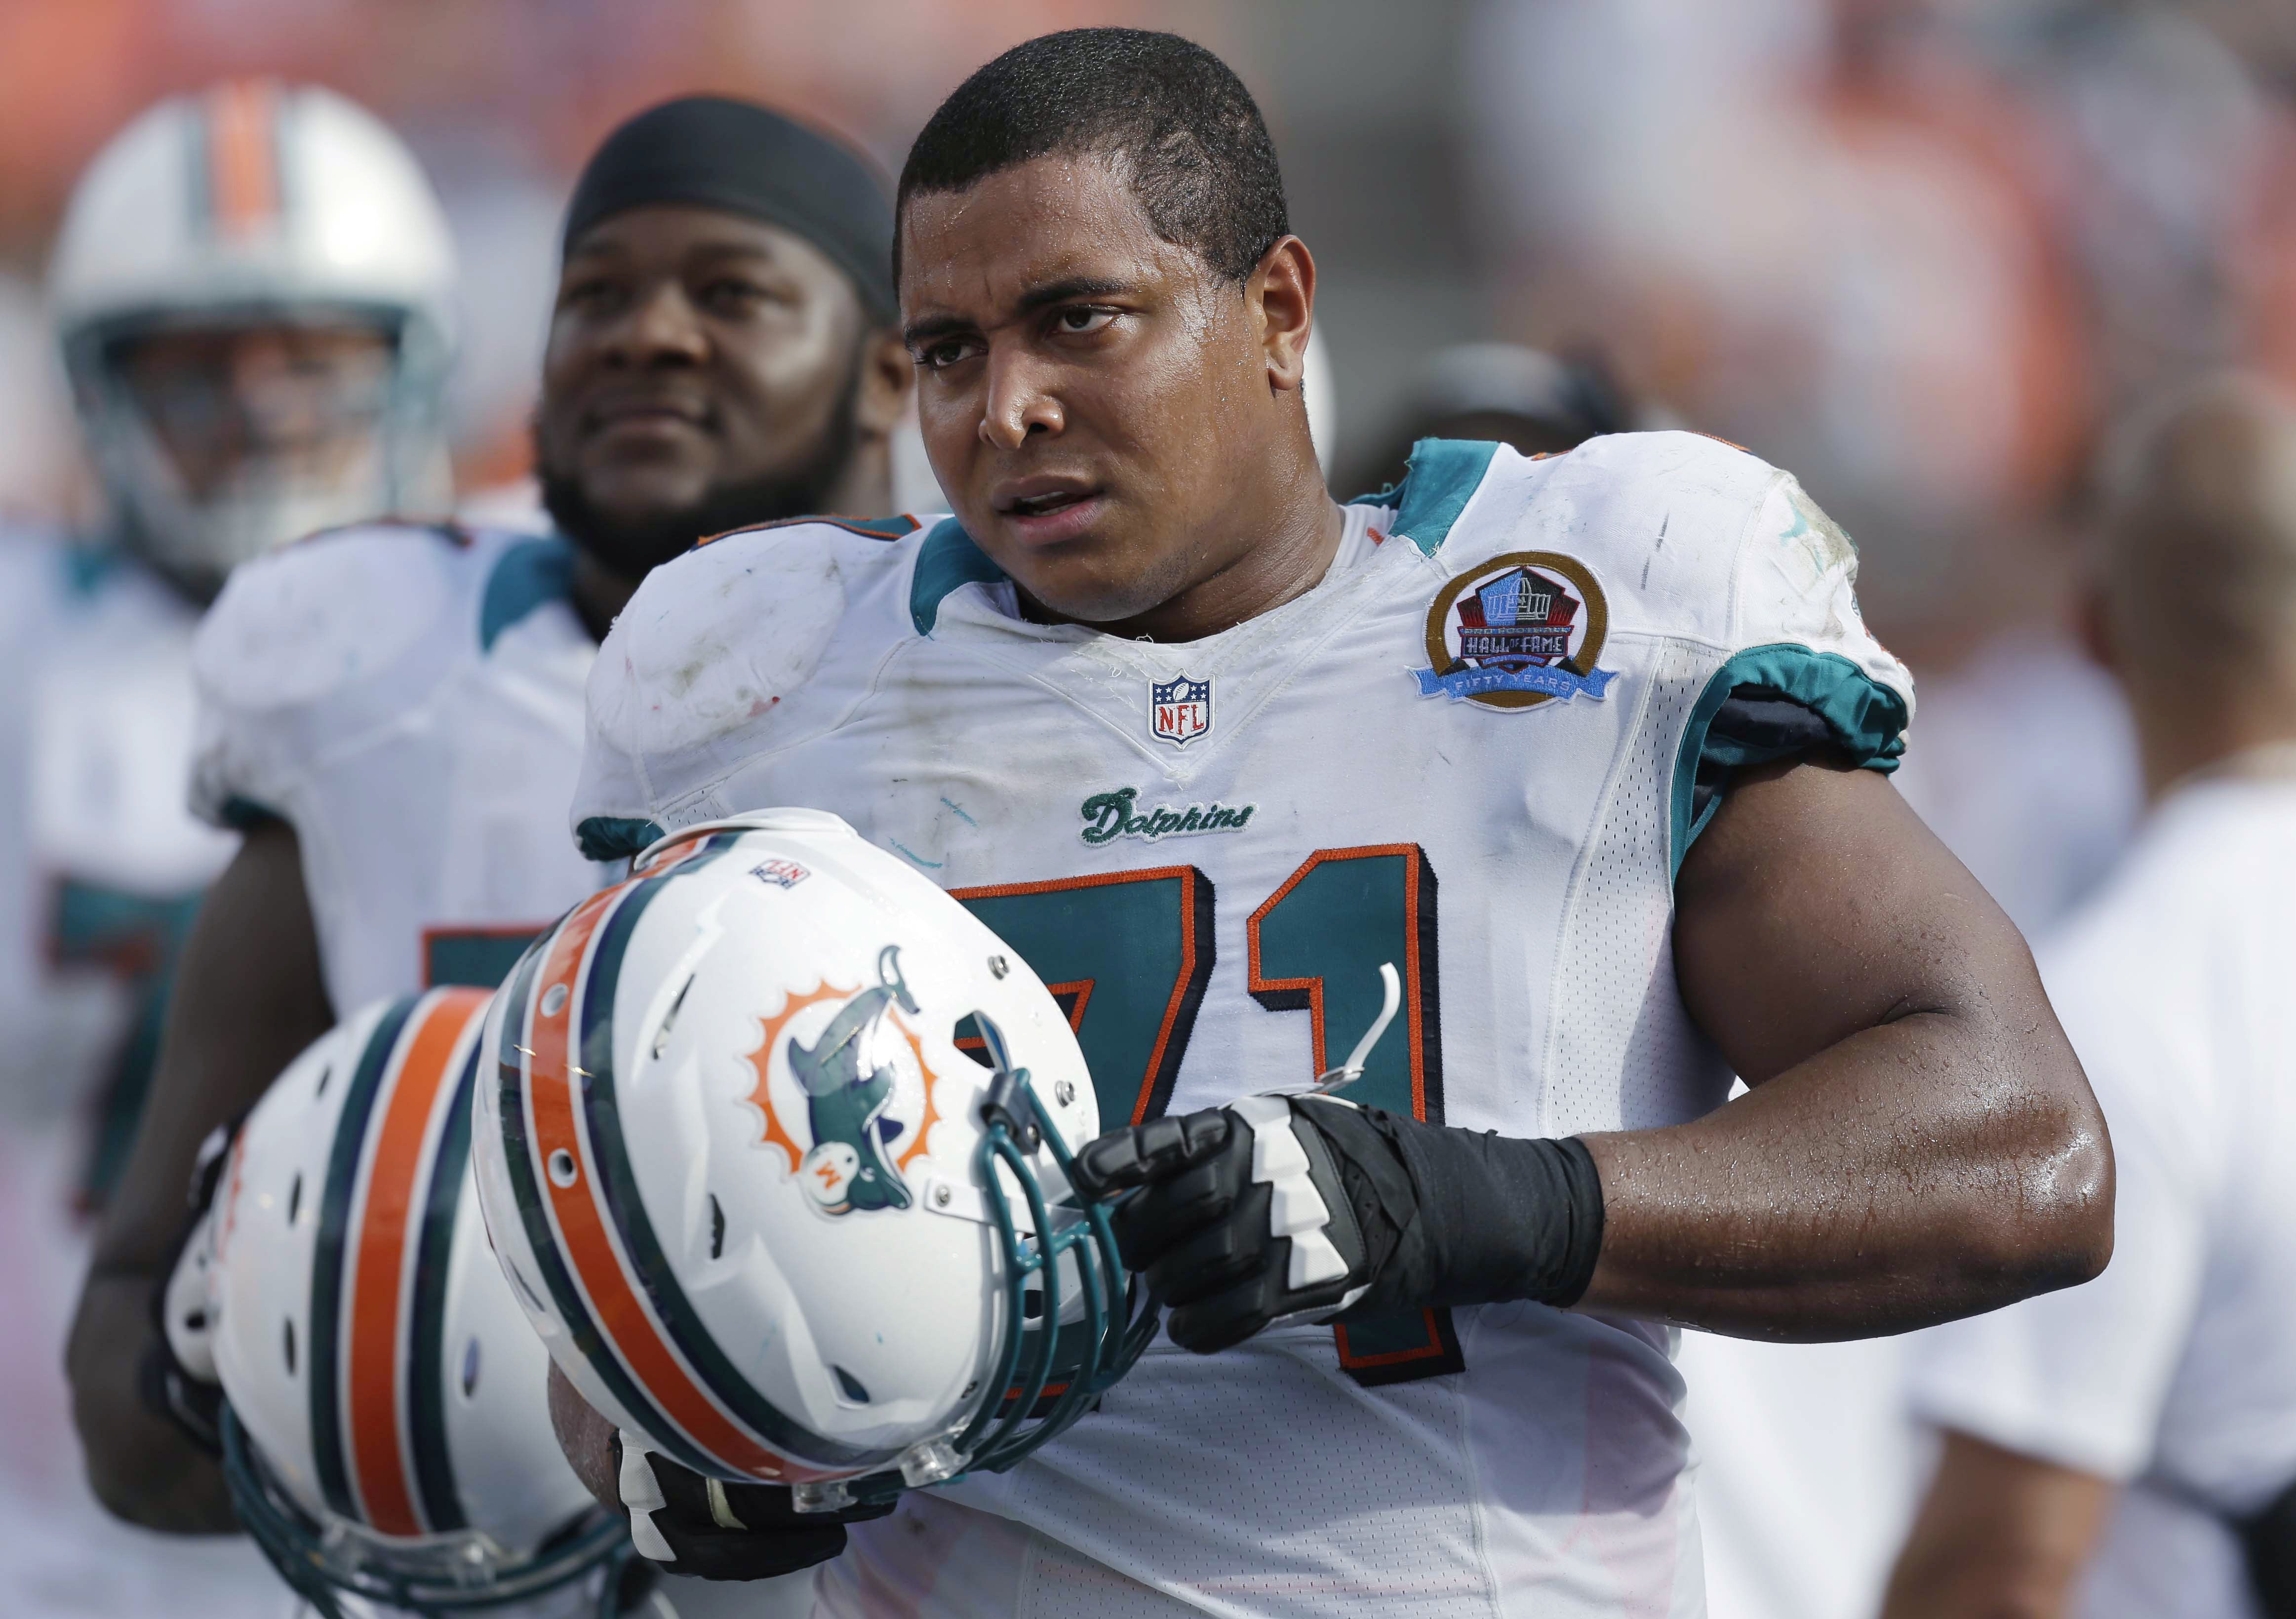 Miami Dolphins tackle Jonathan Martin stands on the sidelines during a Dolphins game in Miami, Dc. 16, 2012.